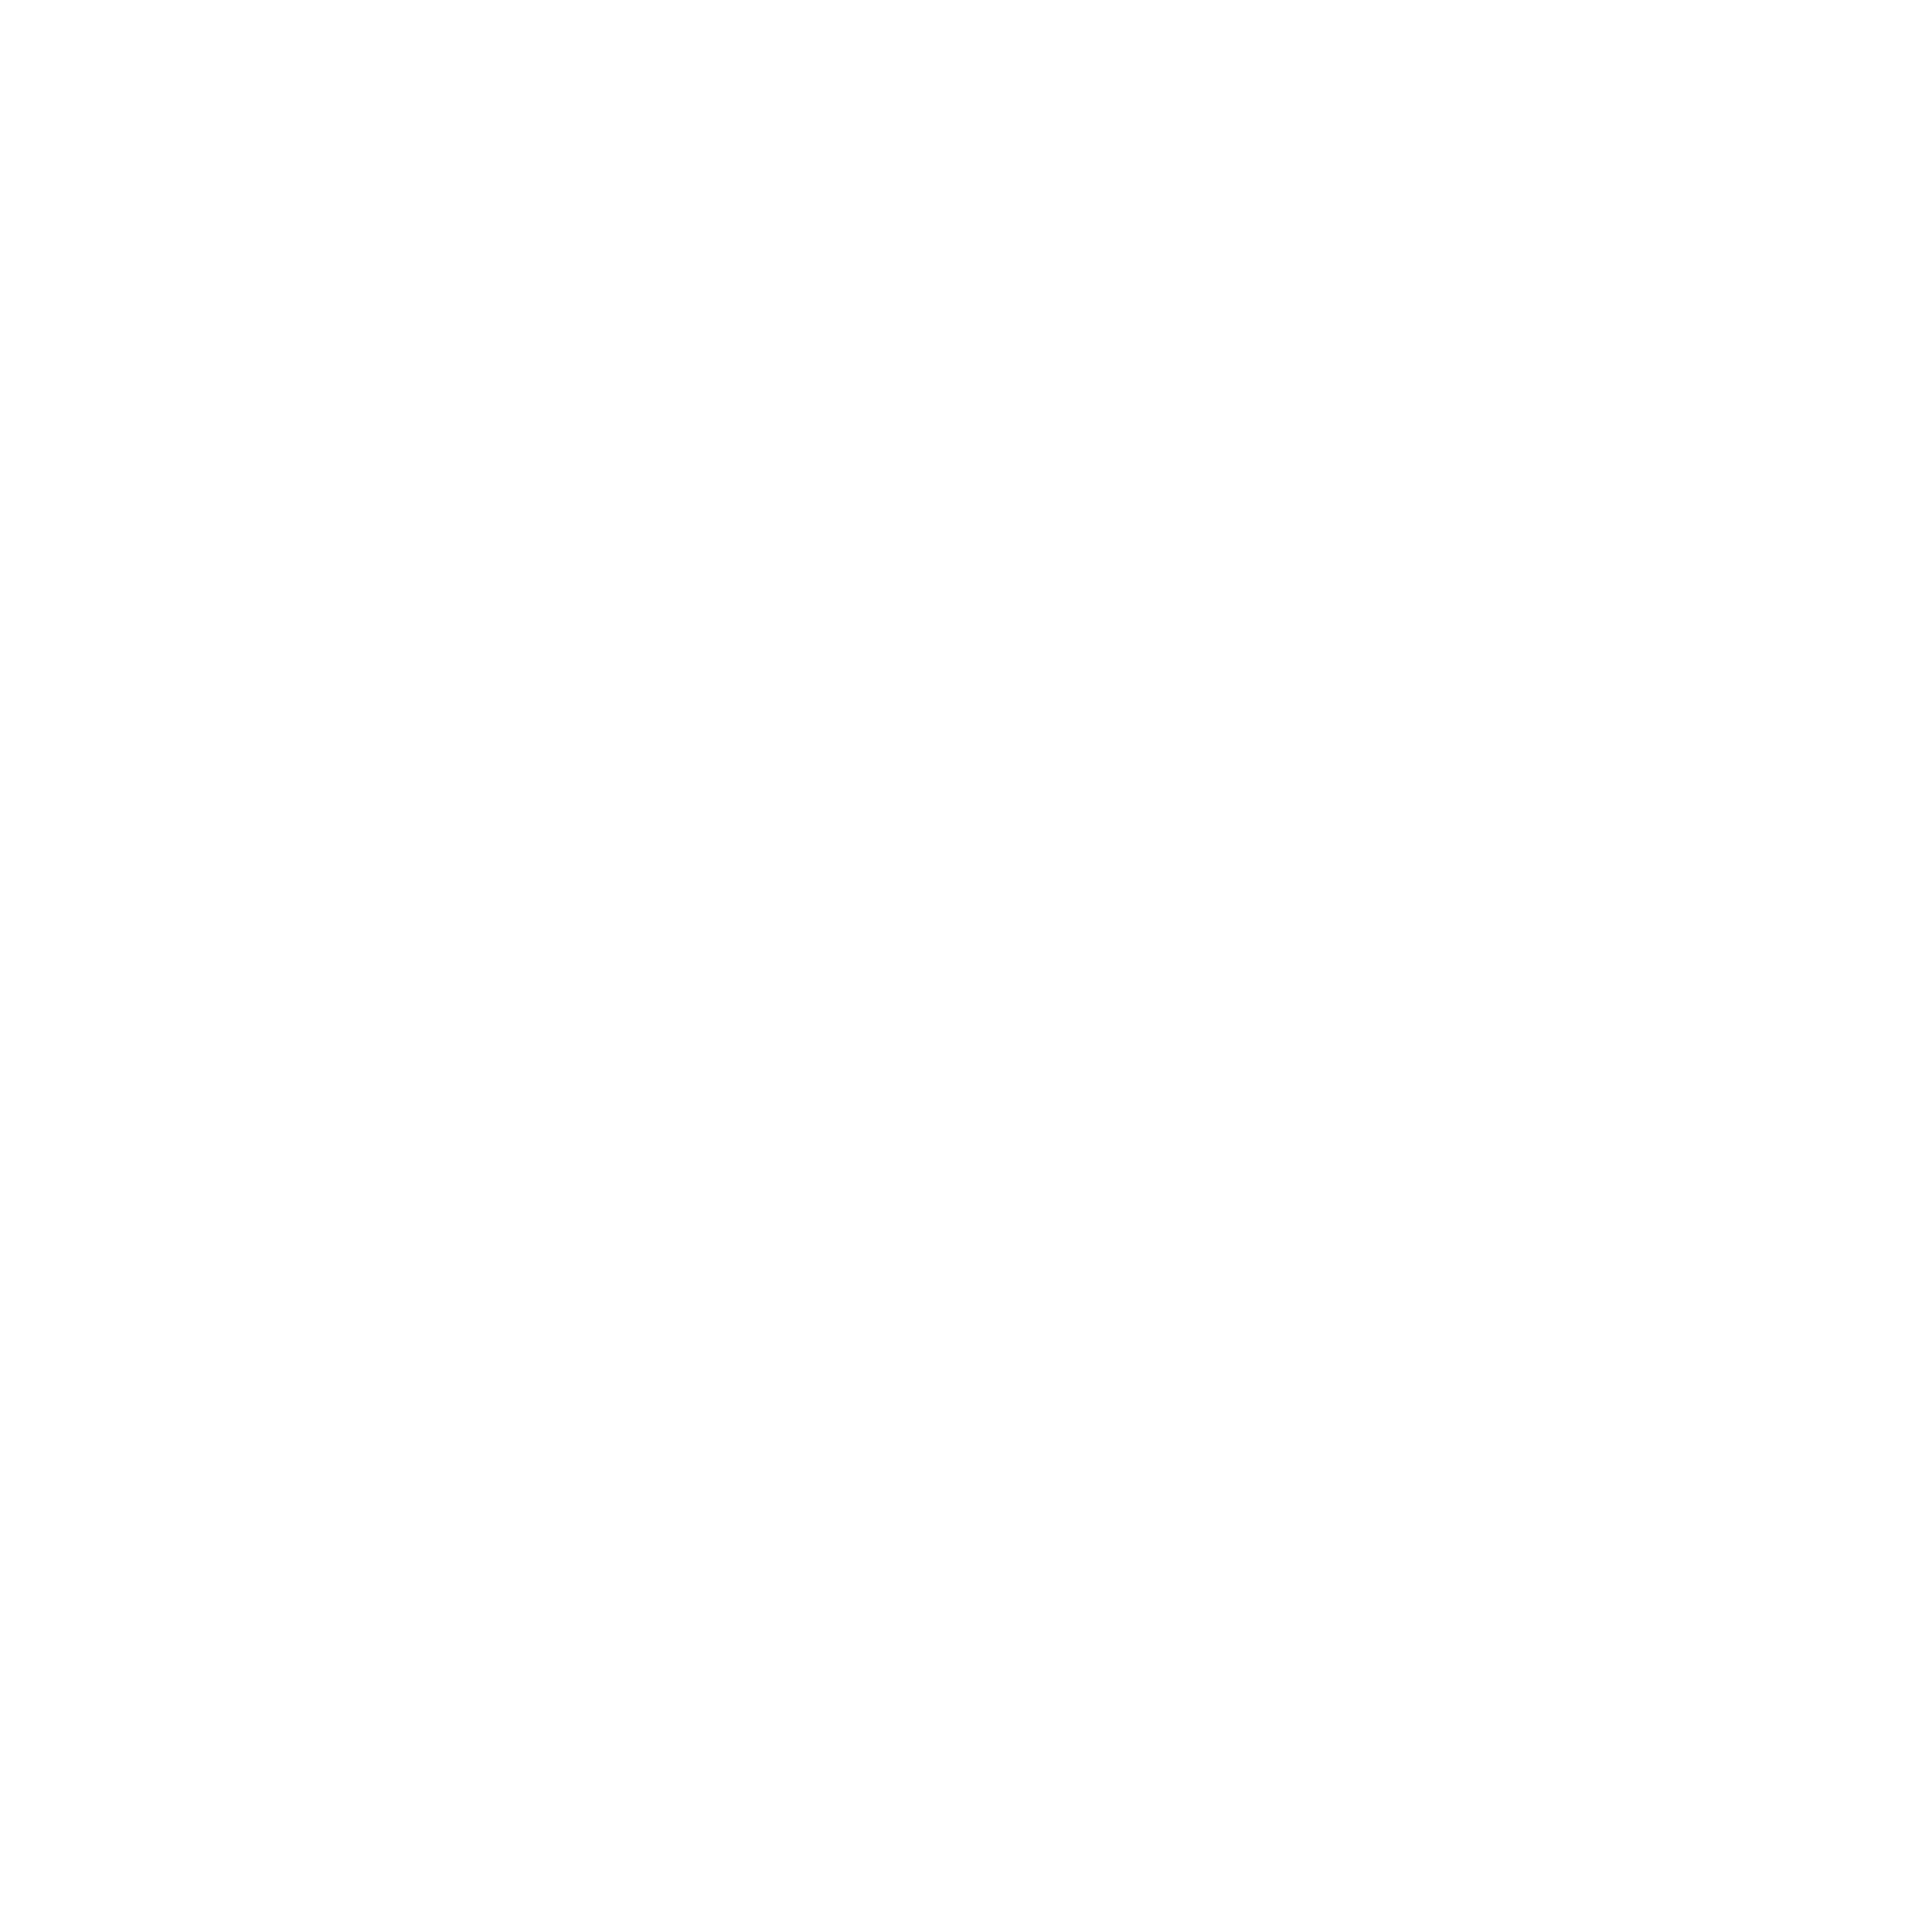 Bengbeng Sourdough   Buy Sourdough Bread Online in Malaysia   Fast Interstate Delivery